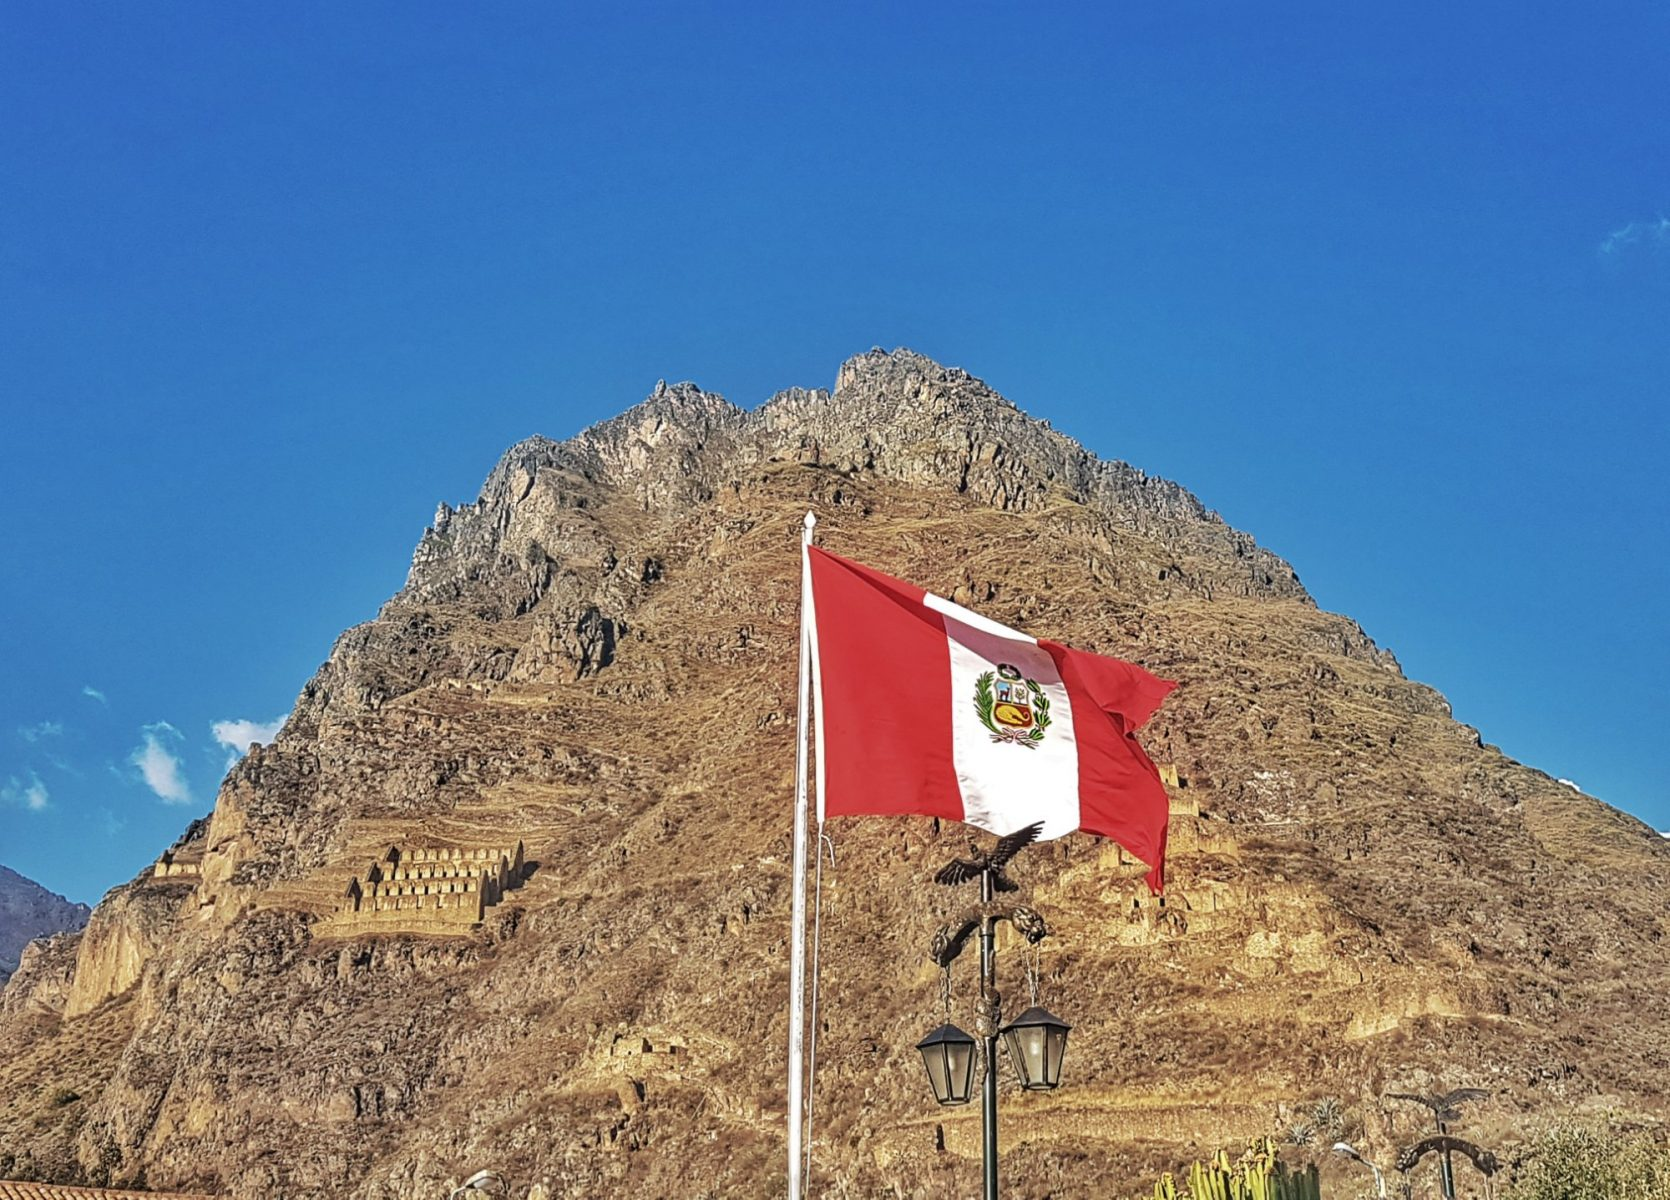 """<img src=""""images/"""" width=""""800"""" height=""""600"""" alt=""""sacred valley - 20171002 162110 011250379132 - Peru: Town Hopping The Sacred Valley"""">"""